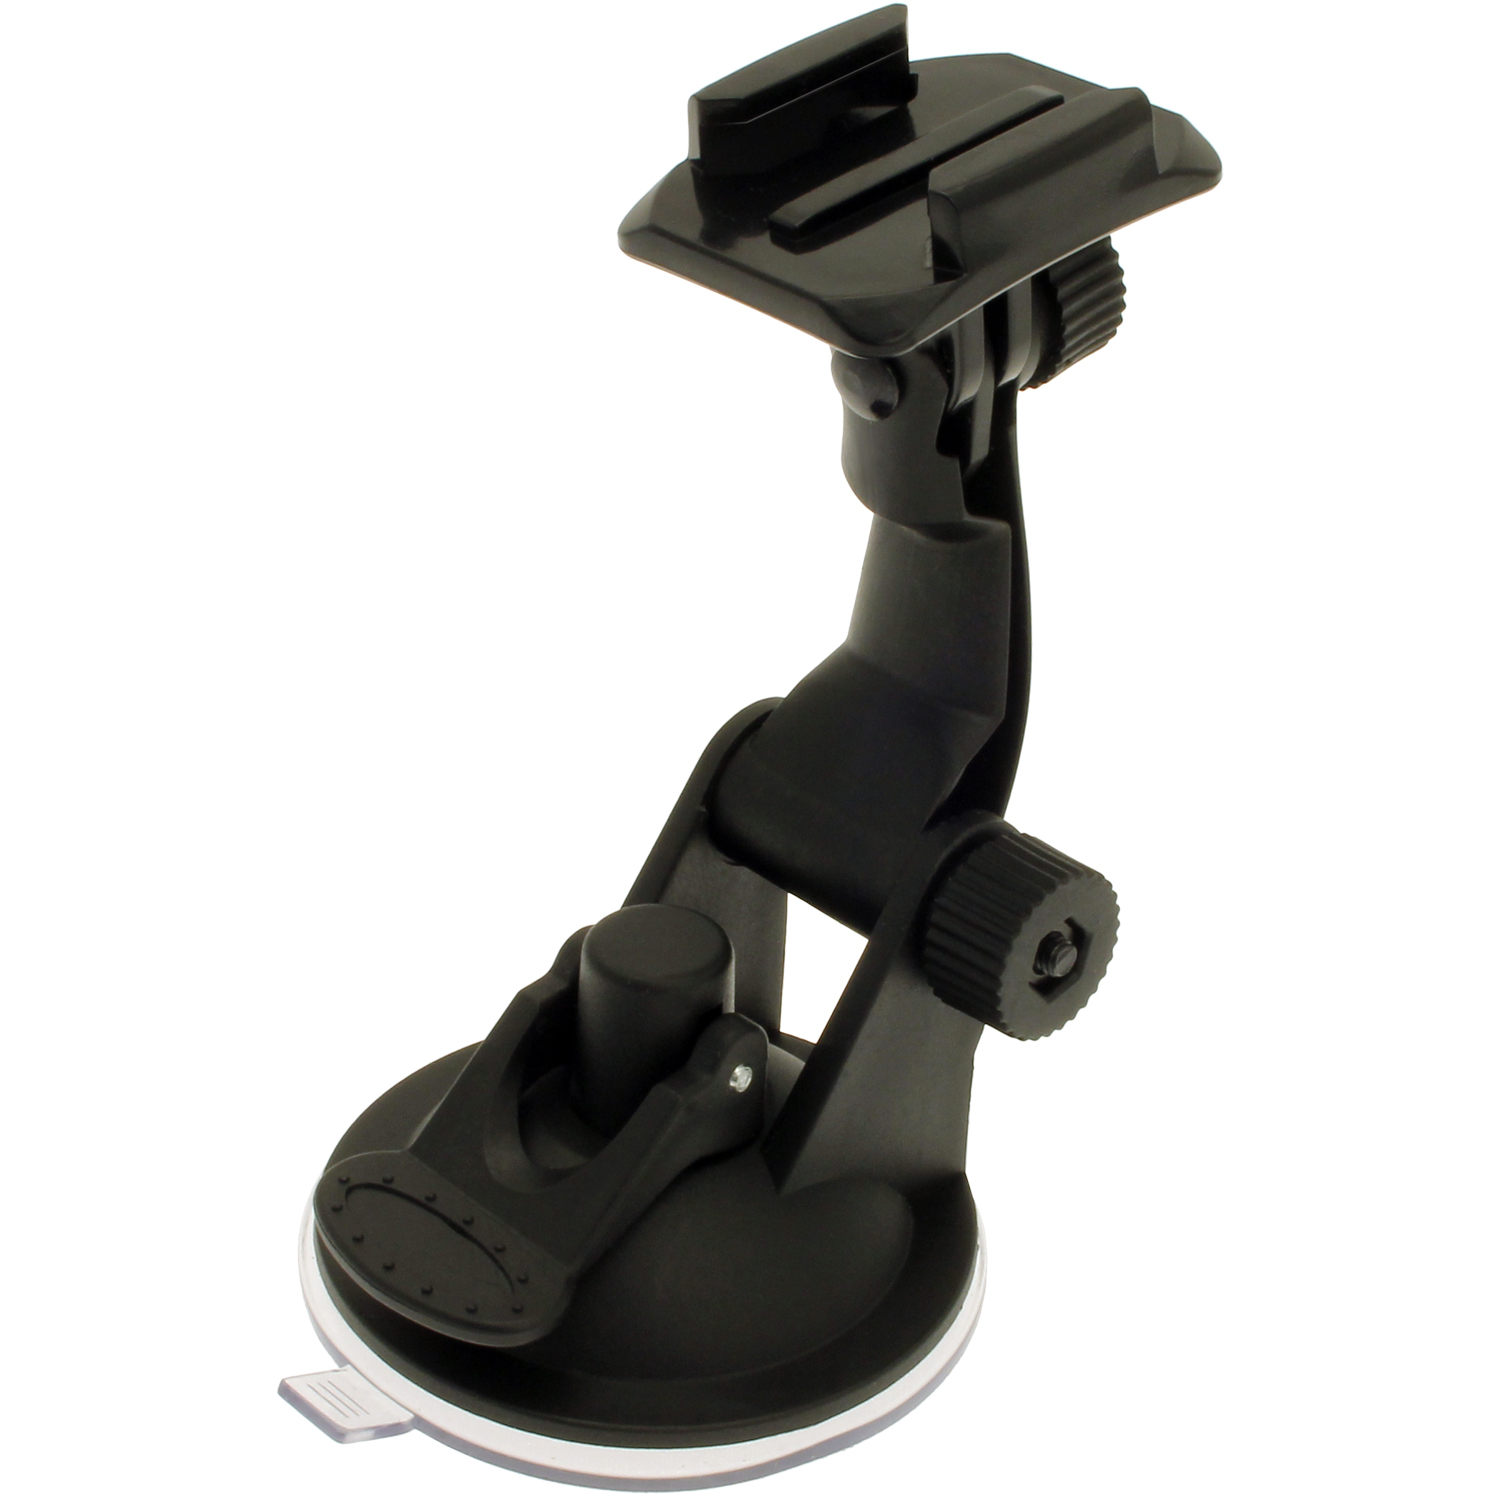 Optix Pro Suction Cup Window and Windshield Car Mount for GoPro Hero5 Black & Session, 4, 3+, 3, 2, 1, Session